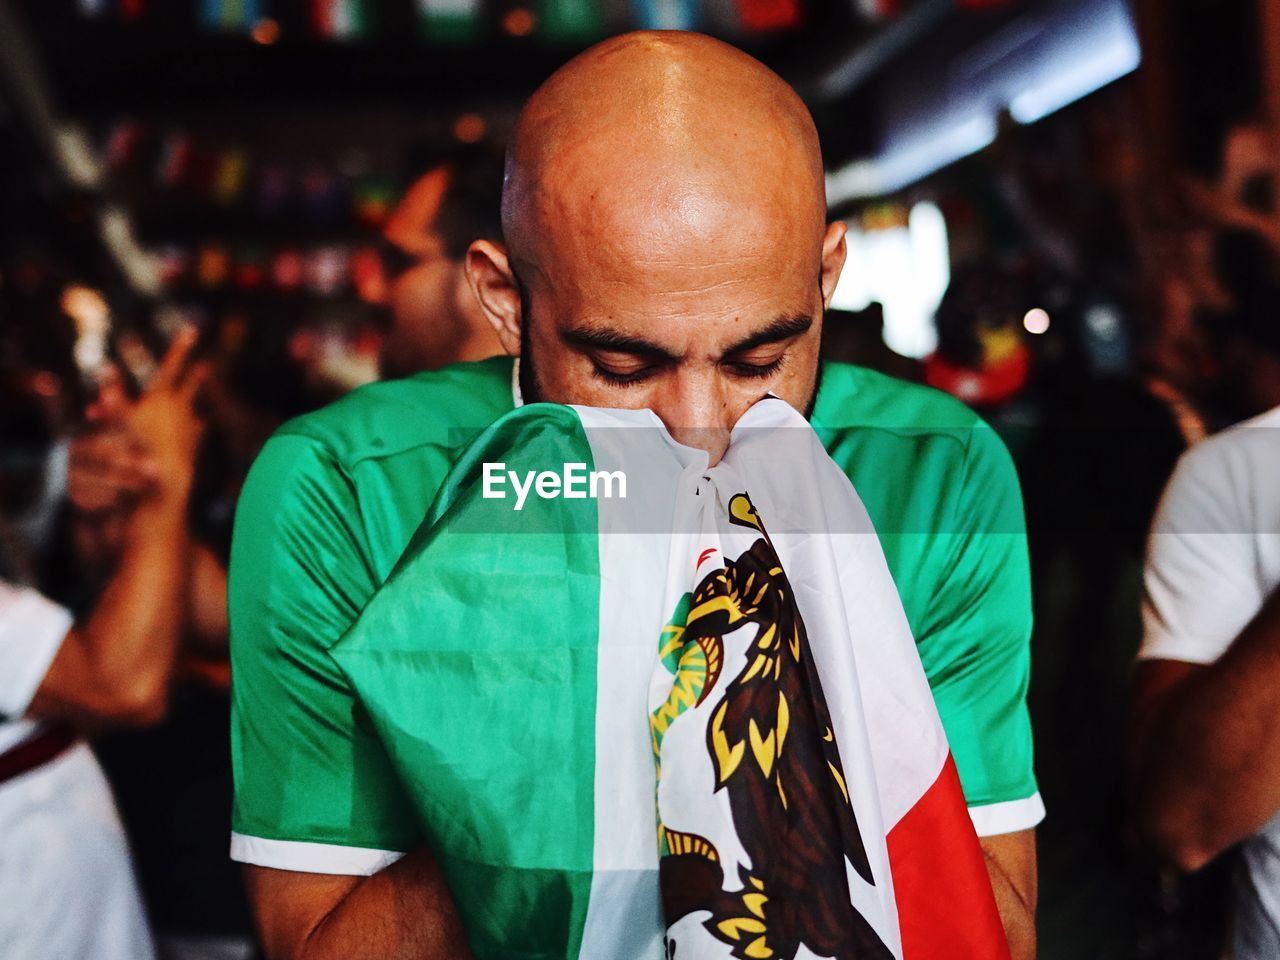 Bald Man With Eyes Closed Holding Flag